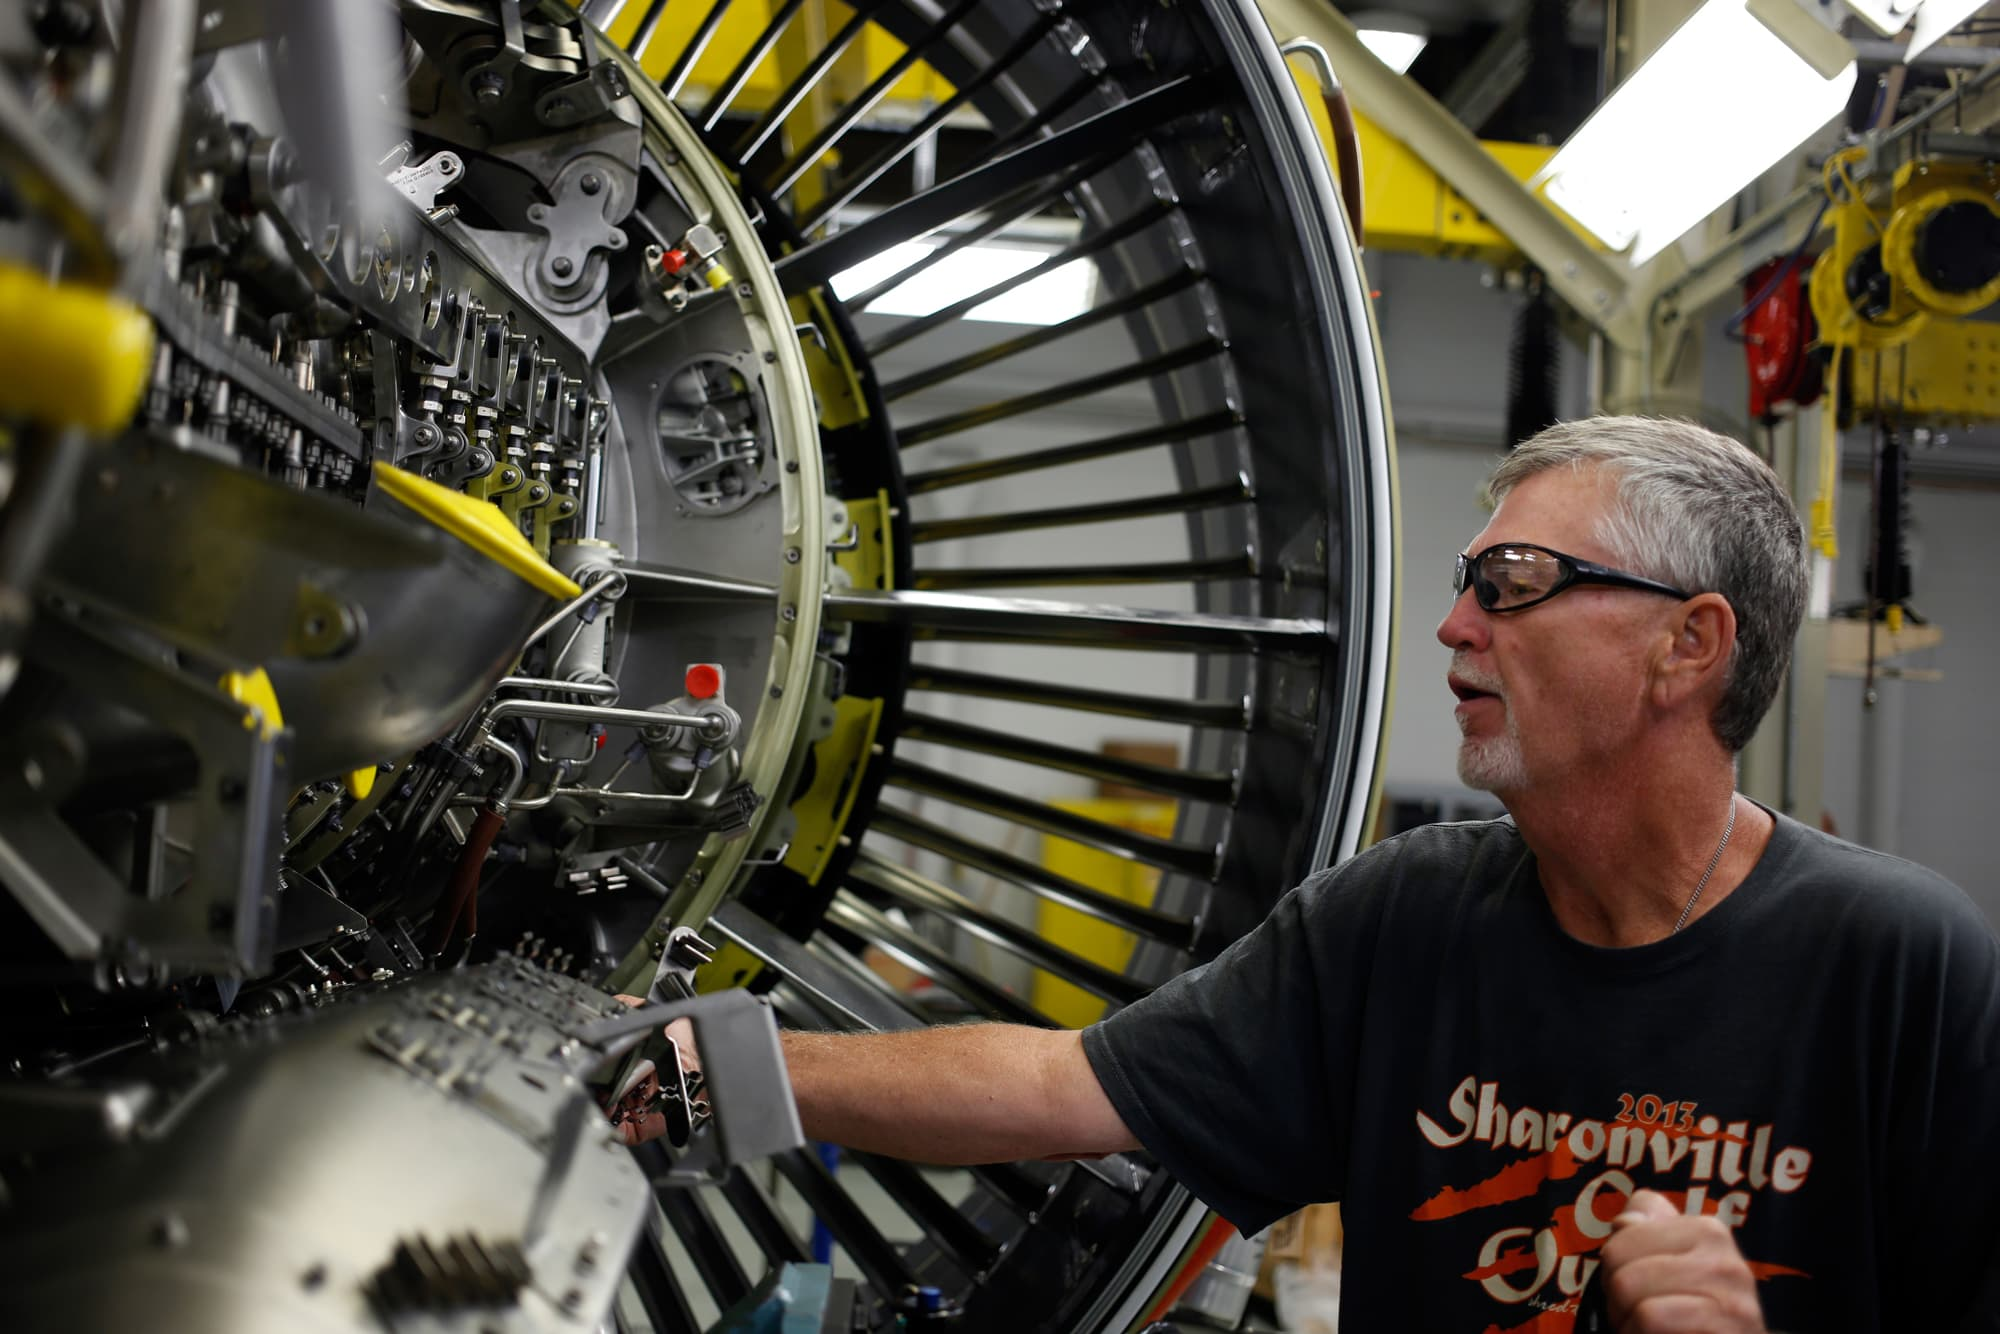 A production assembly mechanic works at the GE Aviation factory in Cincinnati.